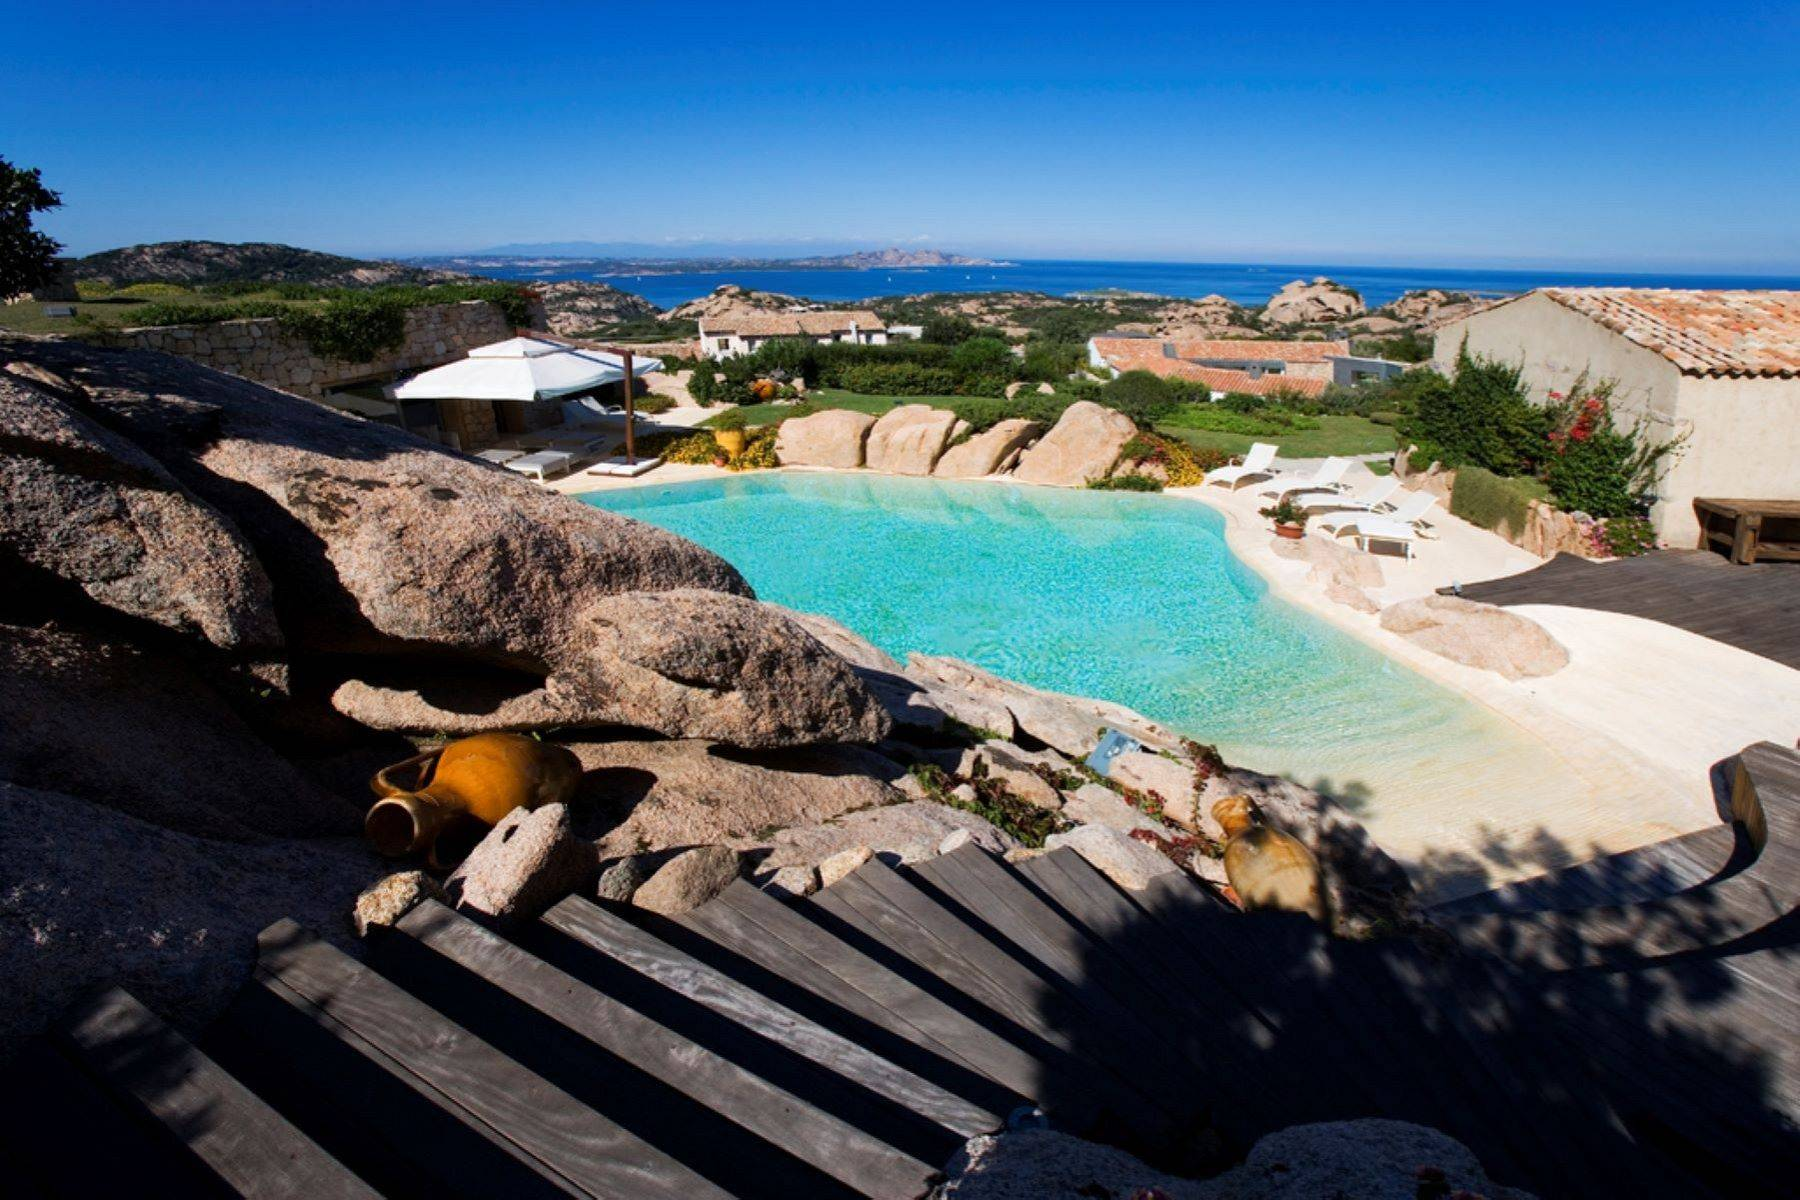 Exclusive property with stunning sea views overlooking the Costa Smeralda - 32